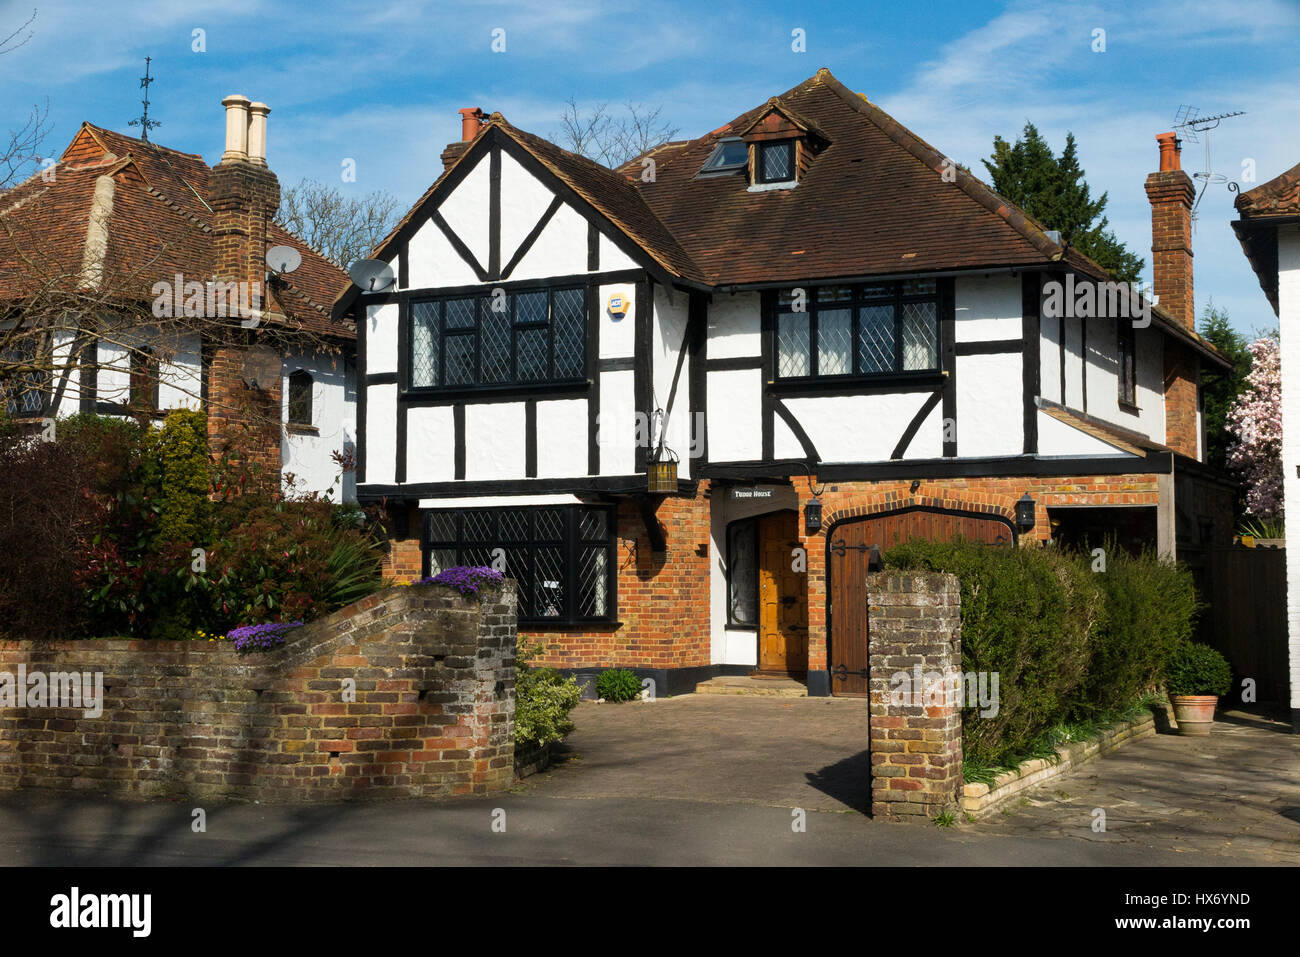 Mock Tudor black and white 1930's house with garage and a drive, in Esher, Surrey. UK. Photograph taken on a - Stock Image